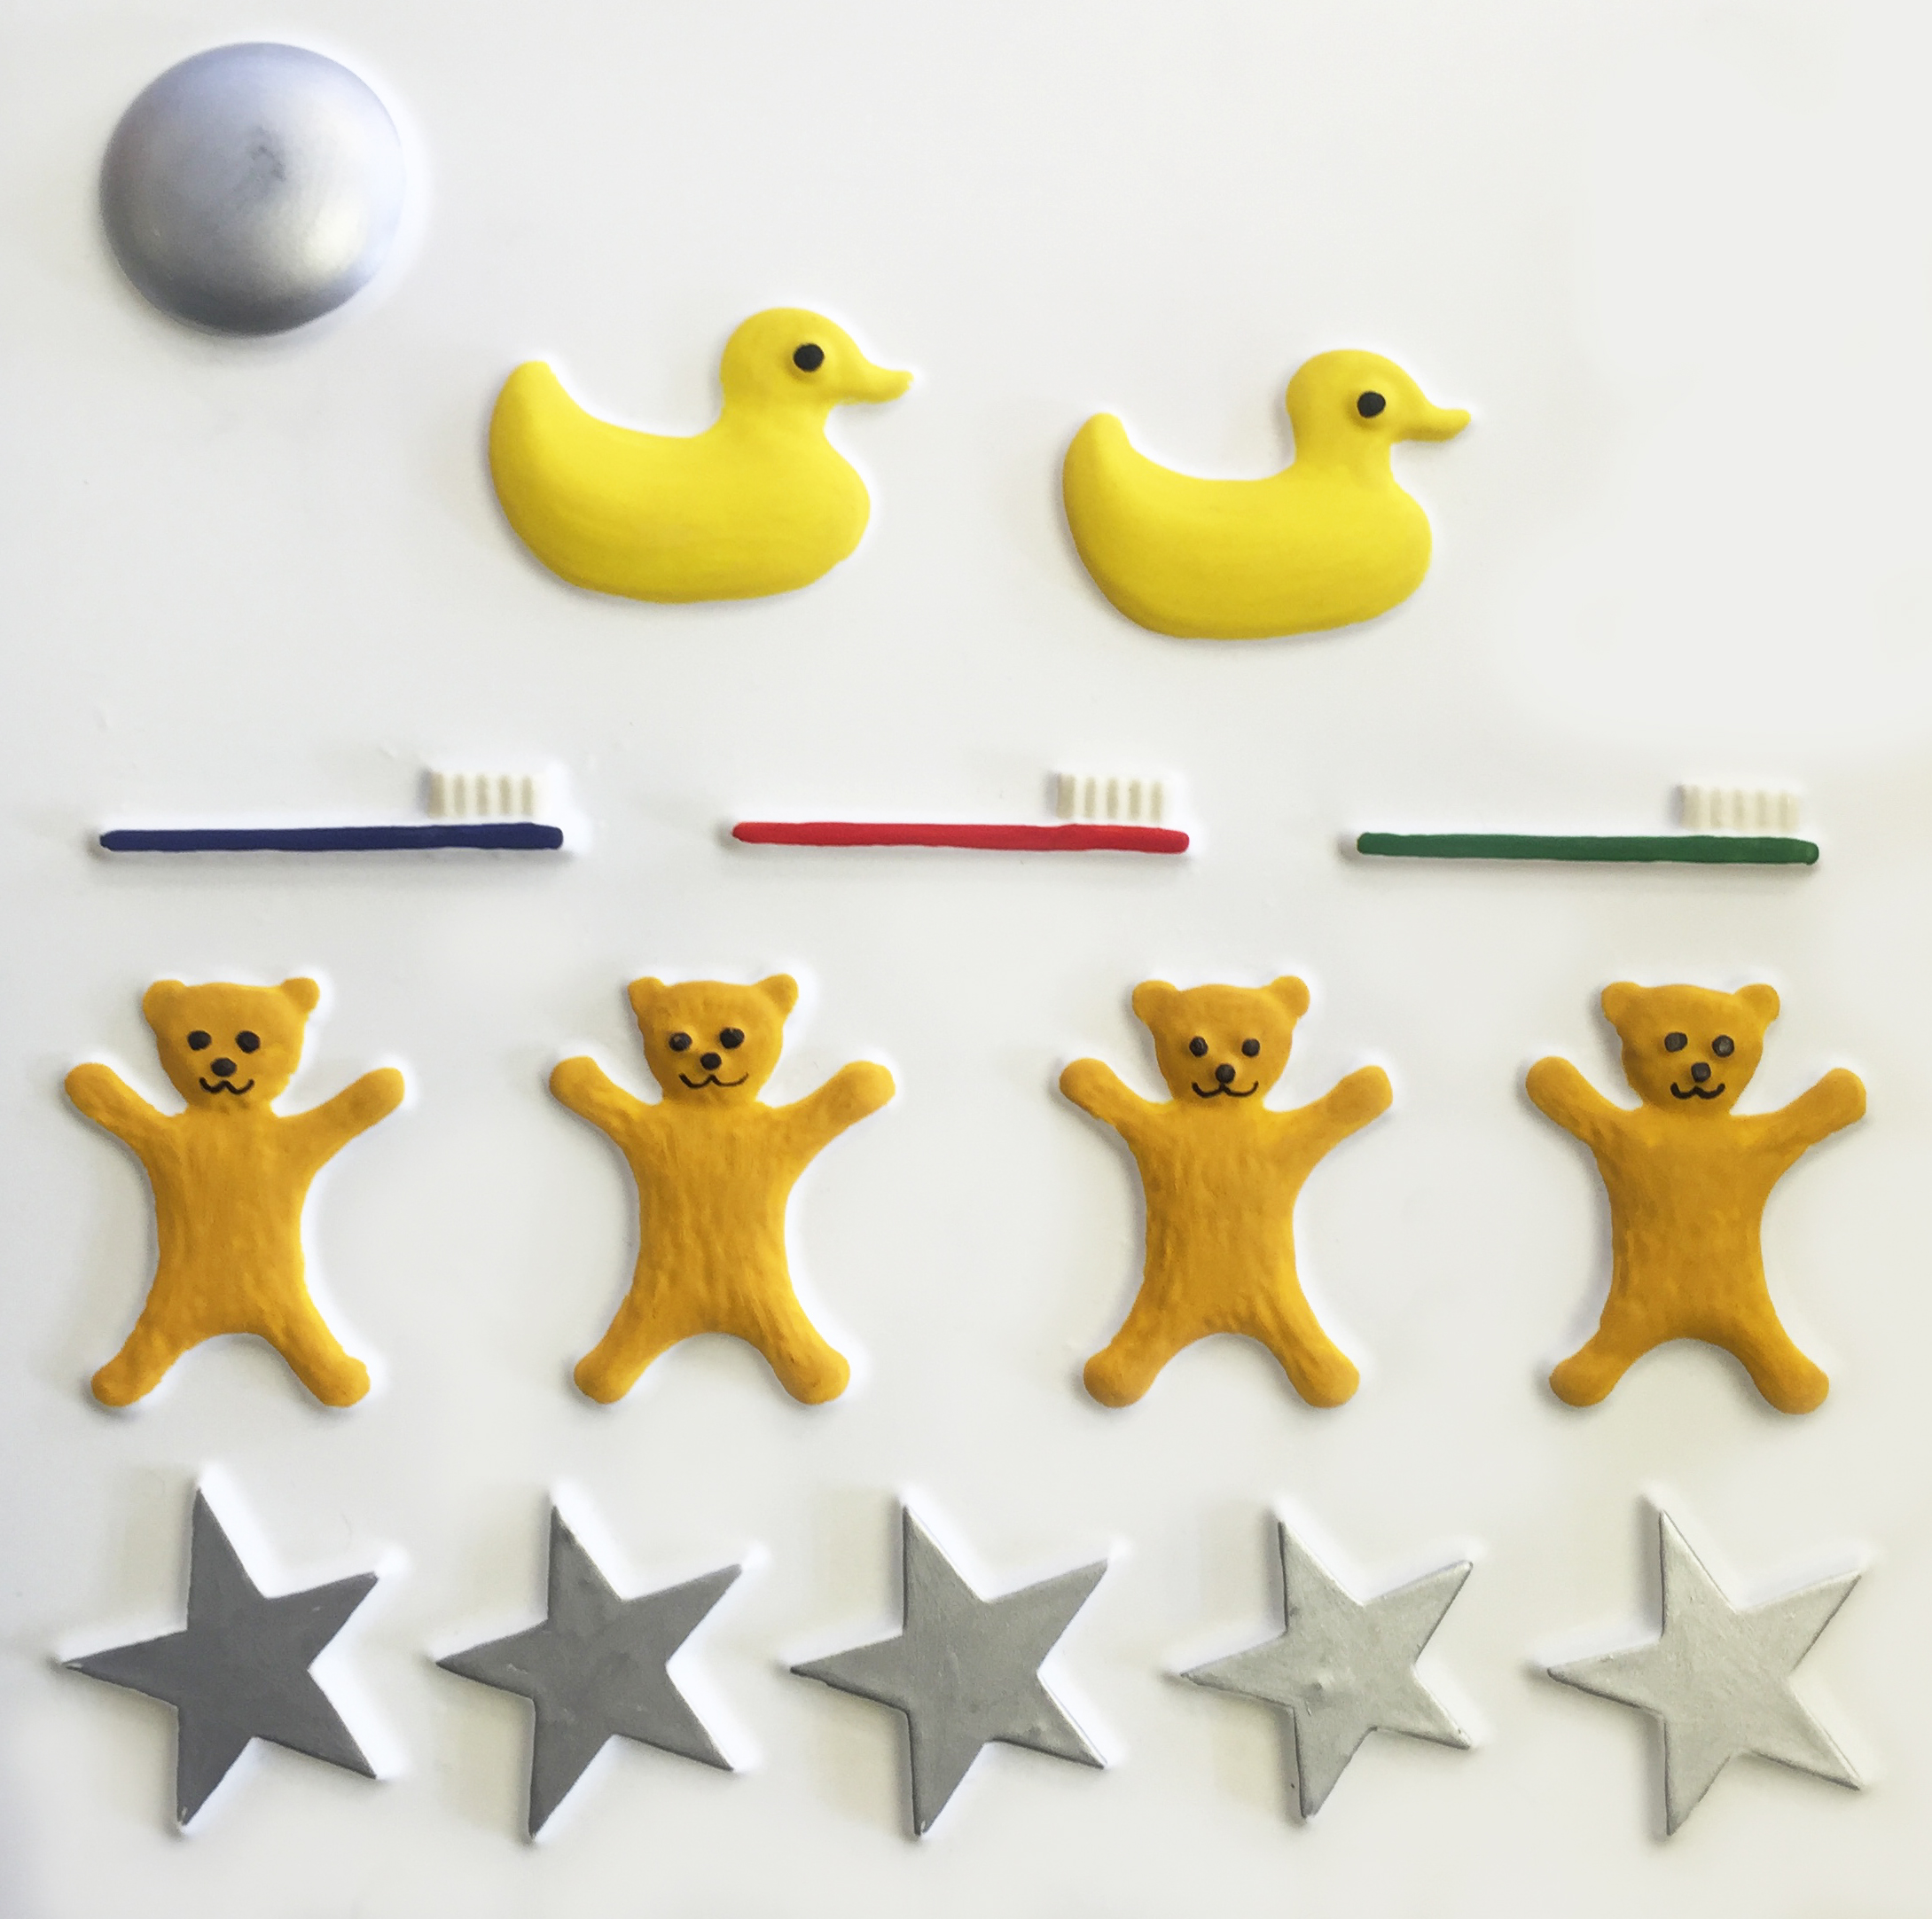 Bedtime counting tactile picture, moon, ducks, toothbrushes, teddy bears, stars.